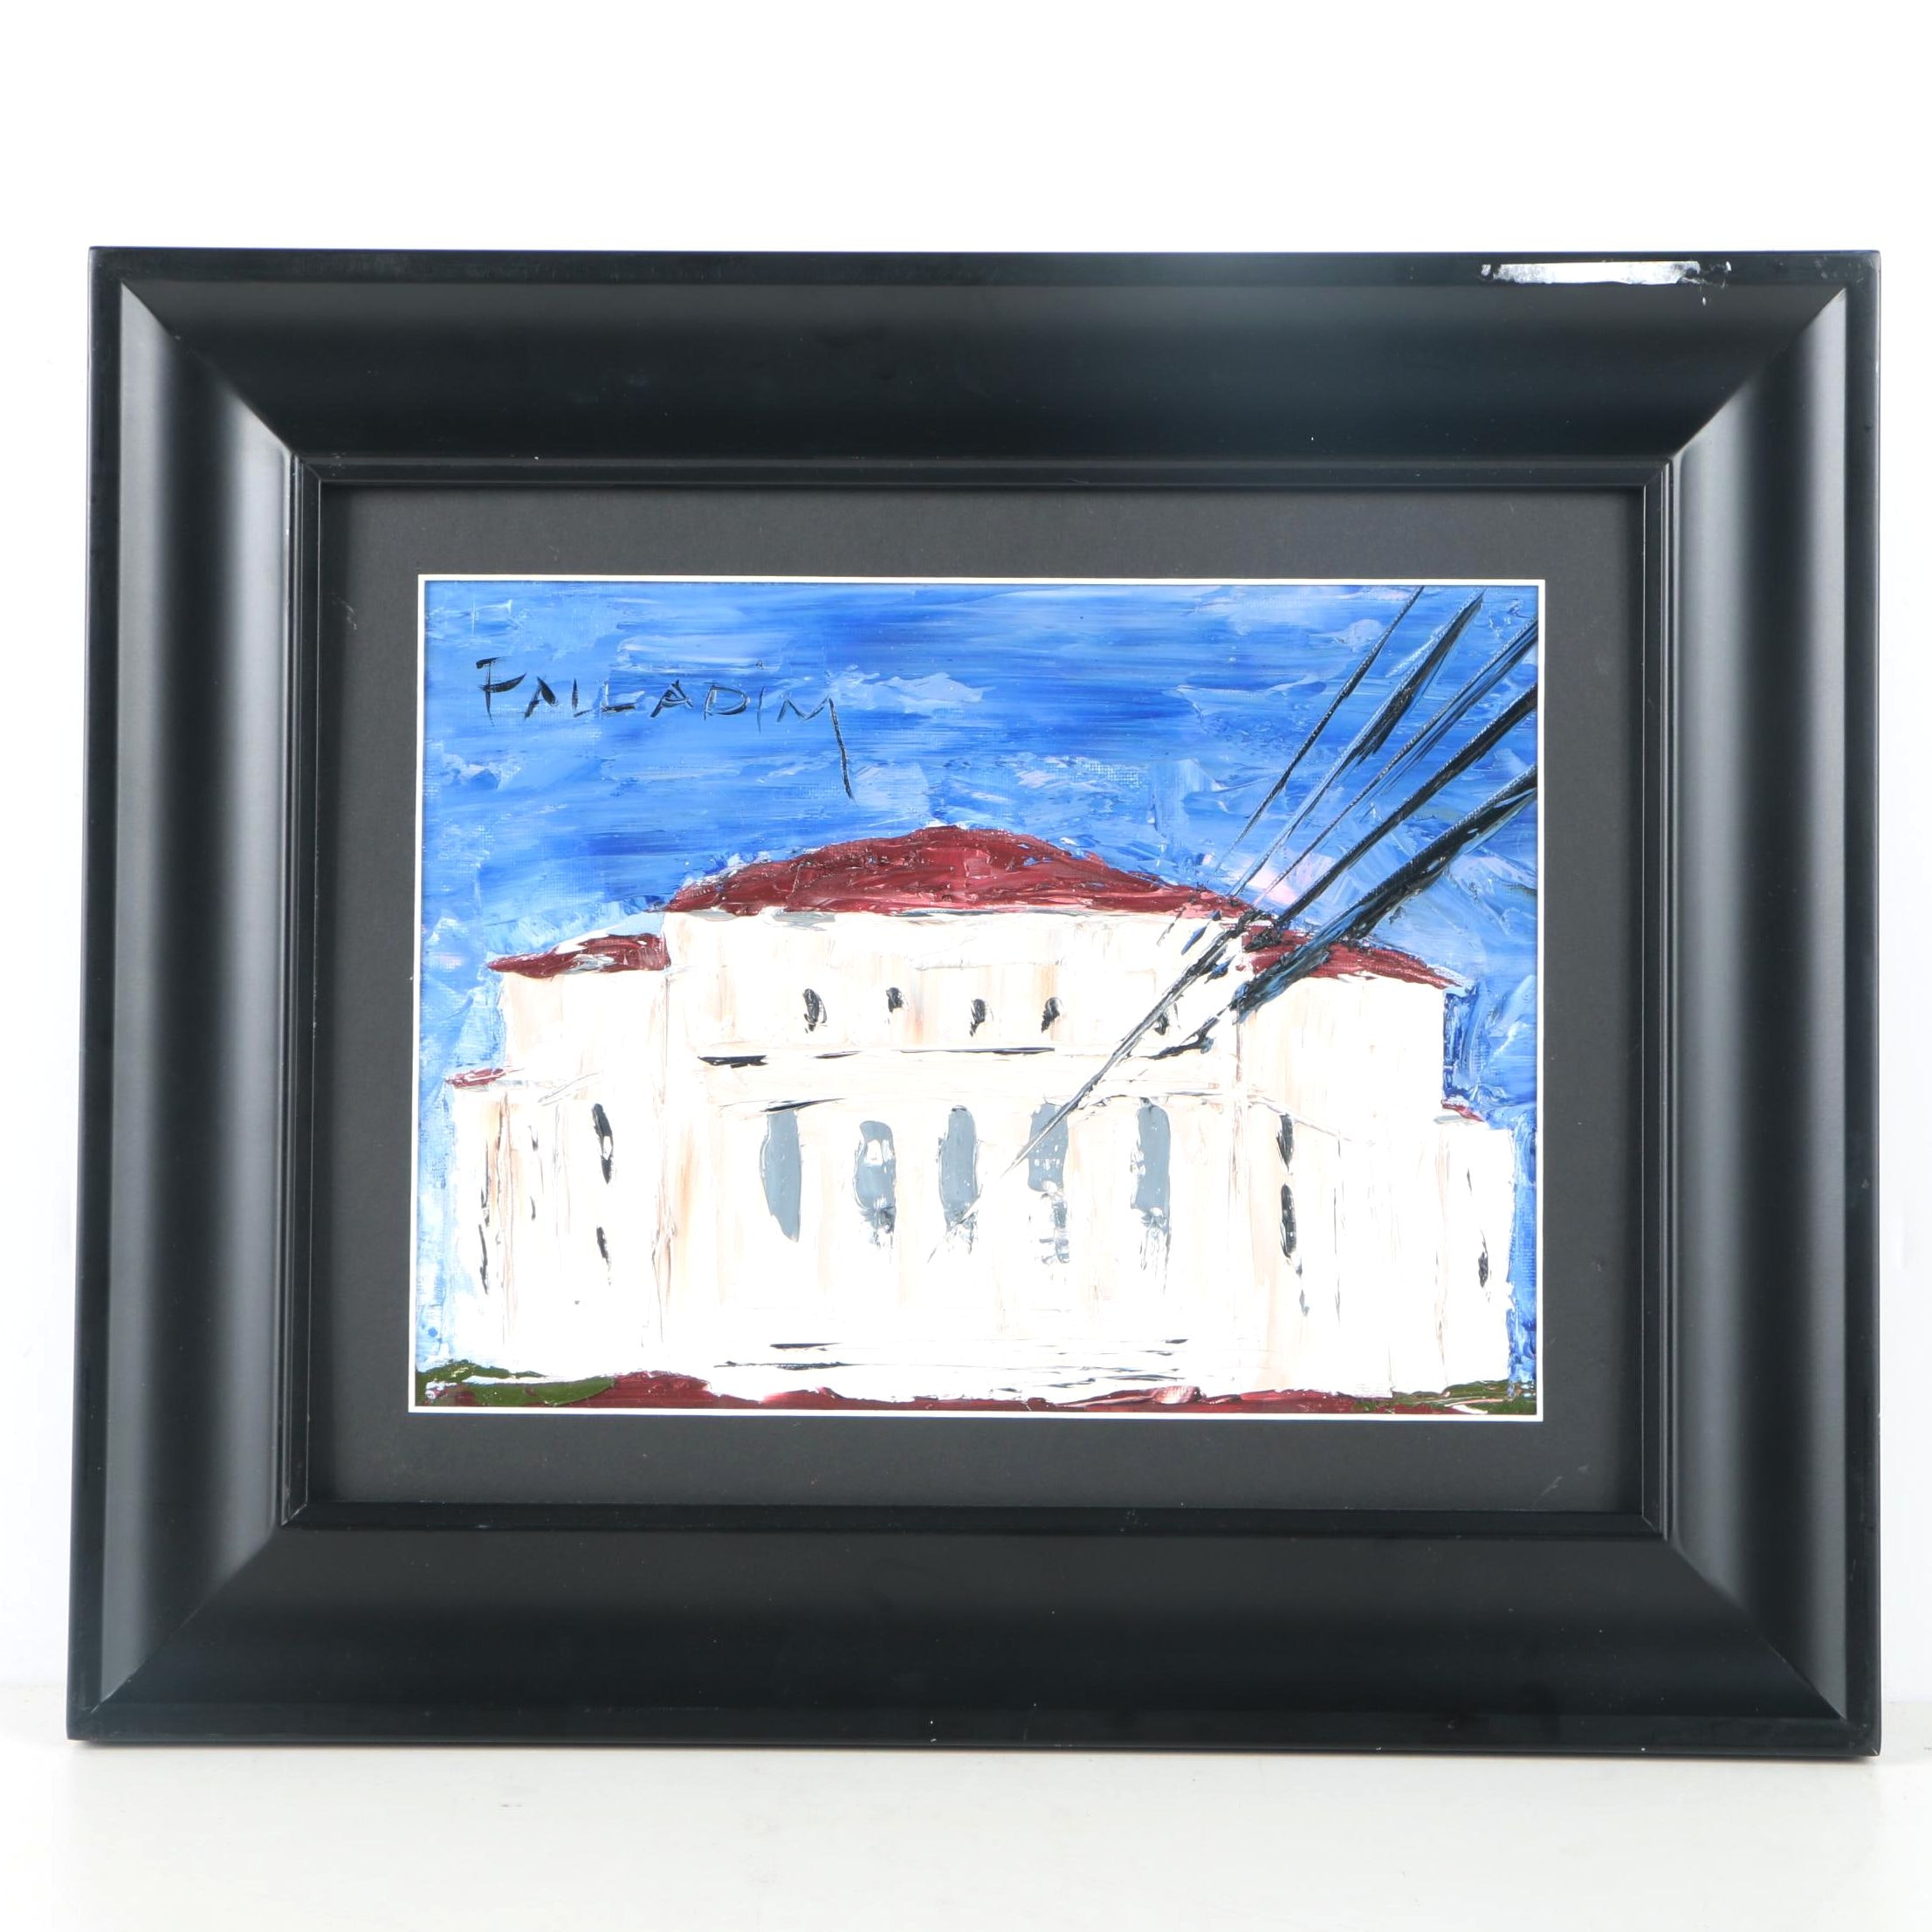 Palladim Oil Painting on Canvas Board of Neoclassical Building